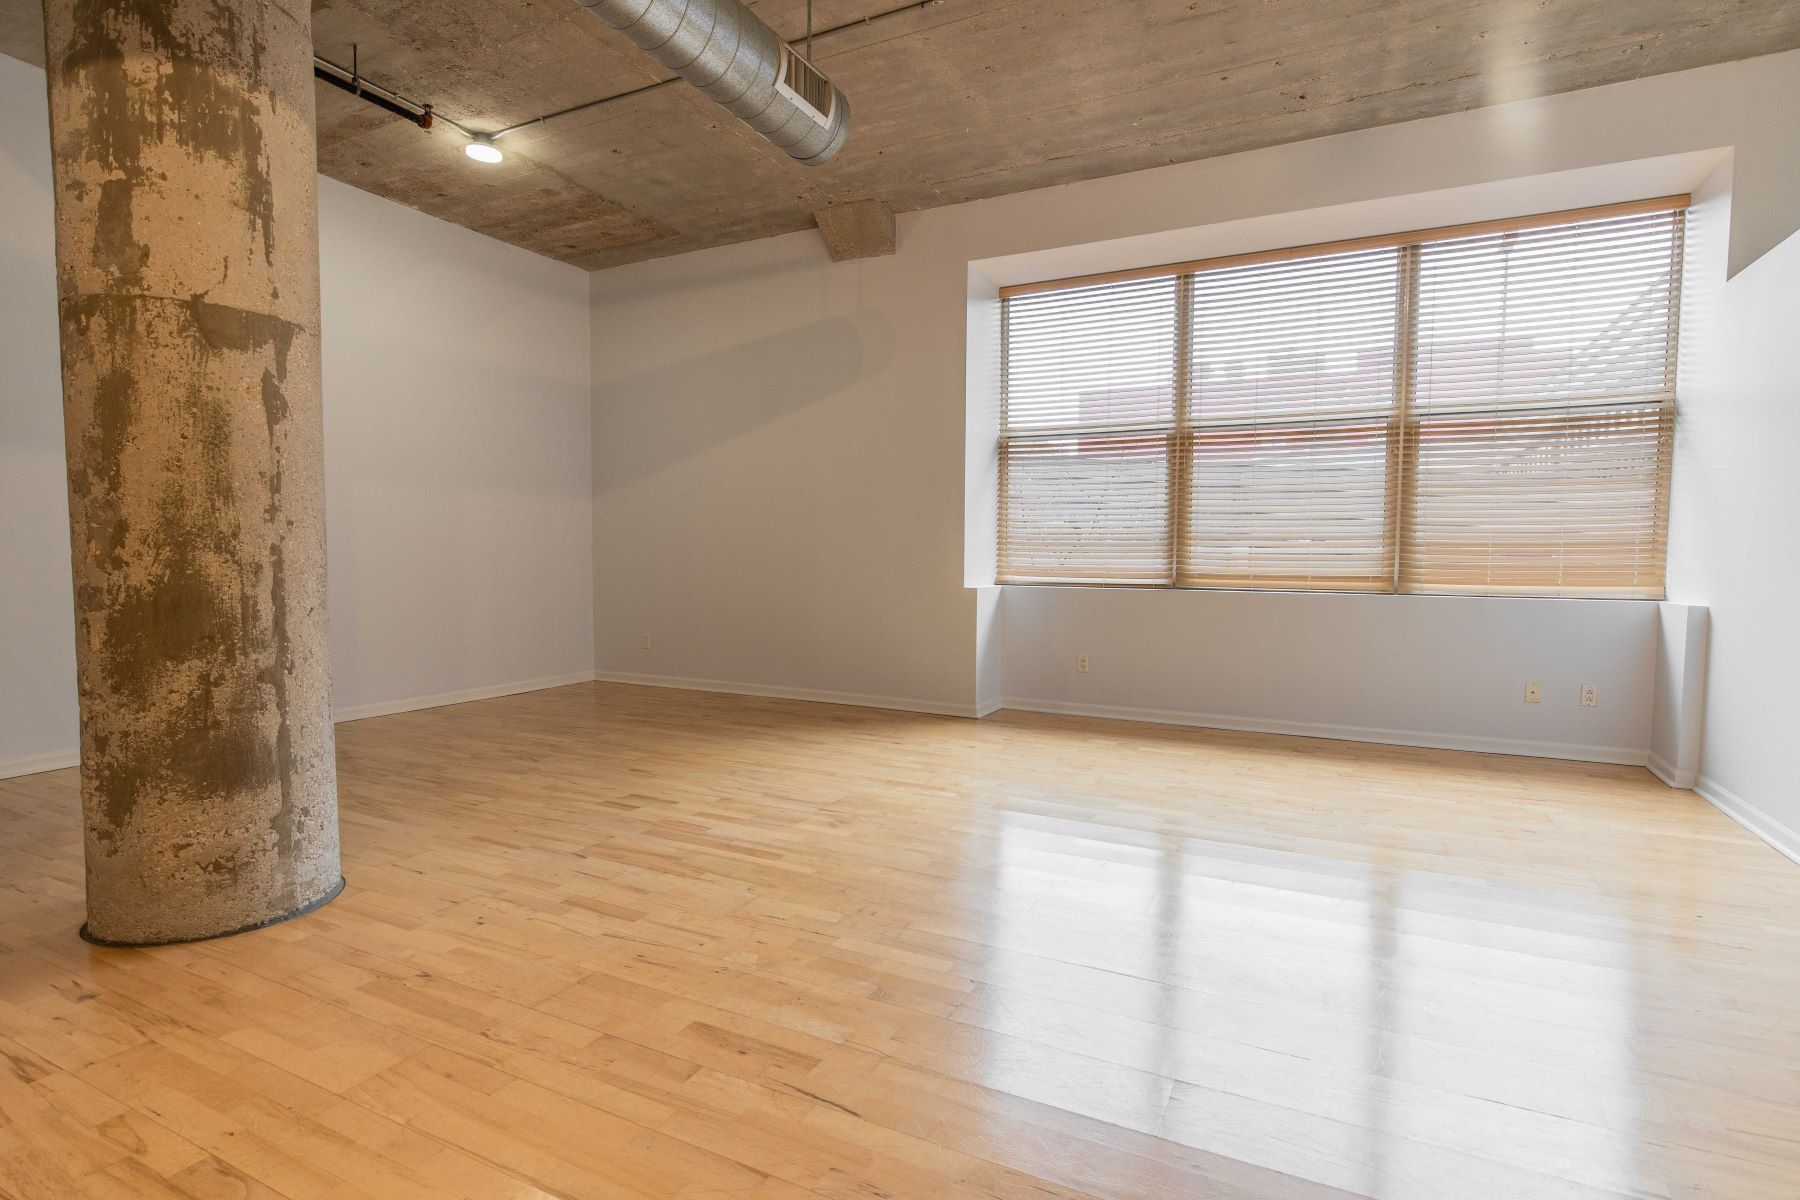 Additional photo for property listing at #305: The Annex 1511 Locust Street Unit 305 St. Louis, Missouri 63103 United States